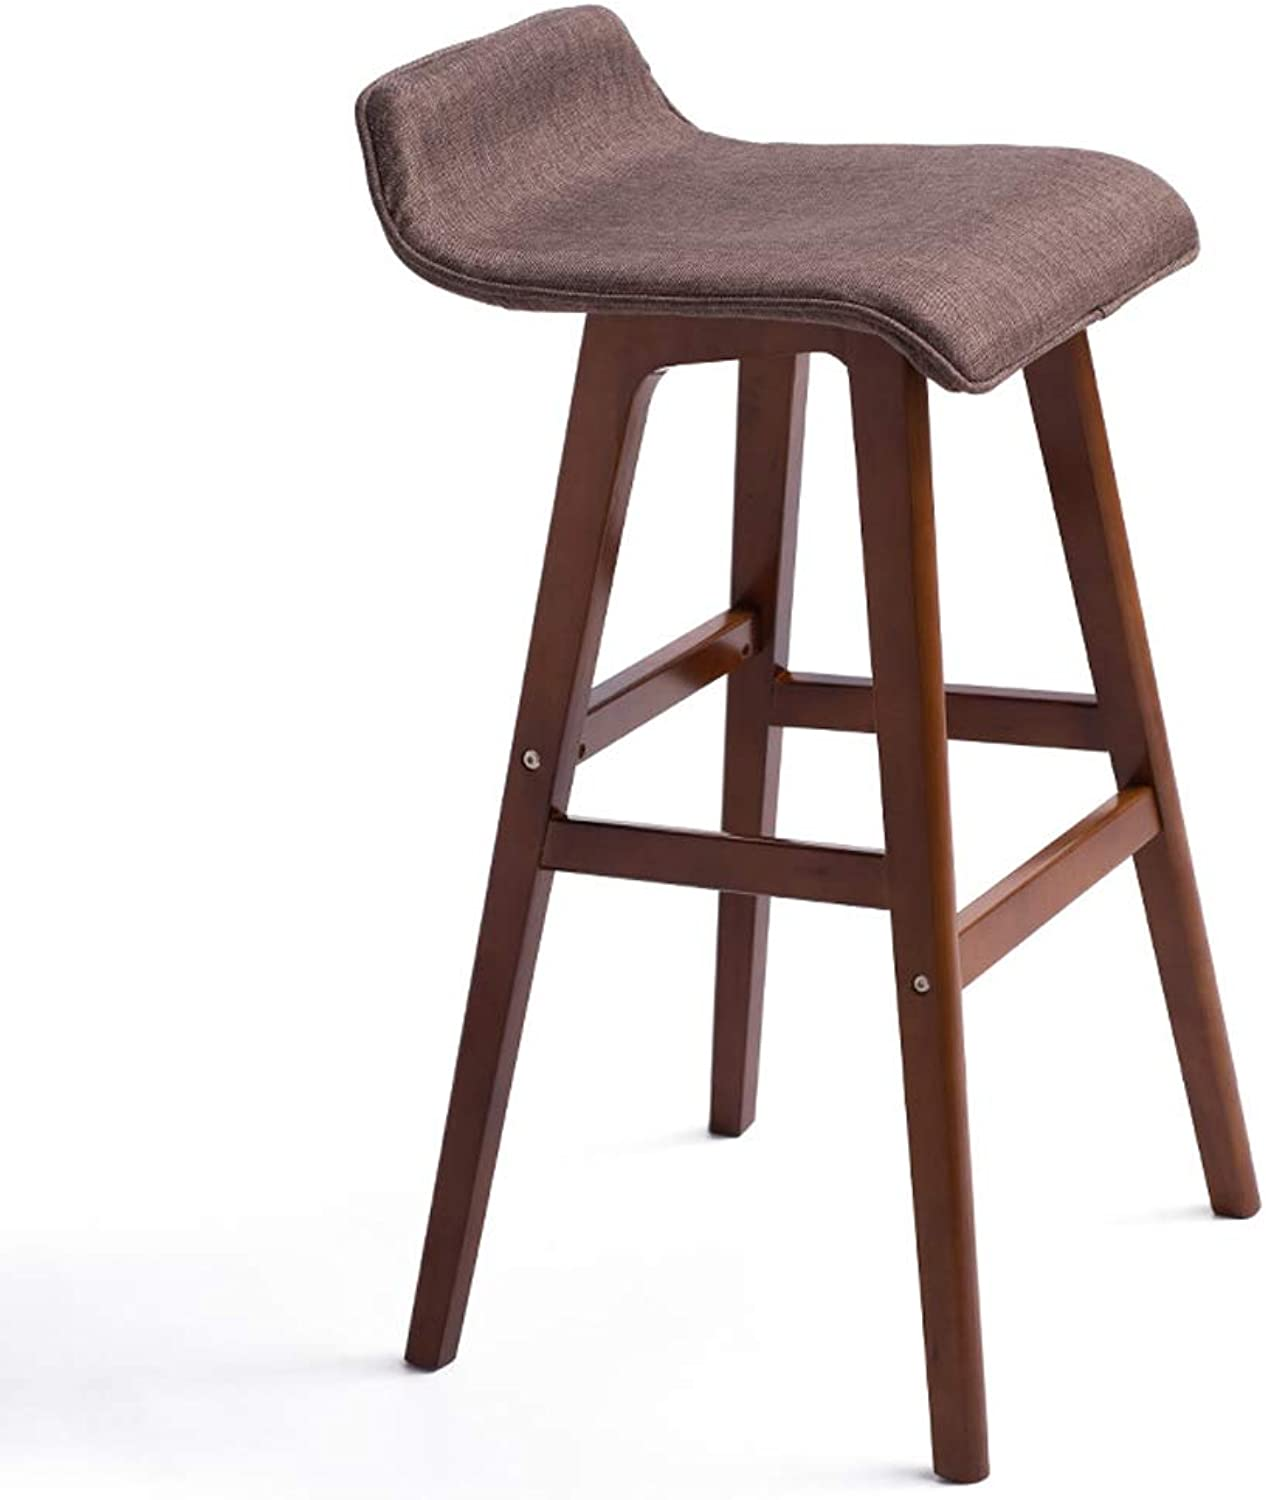 Ghjkl Bar Chairs Creative bar Chairs Simple Retro bar Stool high Stool -by TIANTA (color   Reddish Brown)